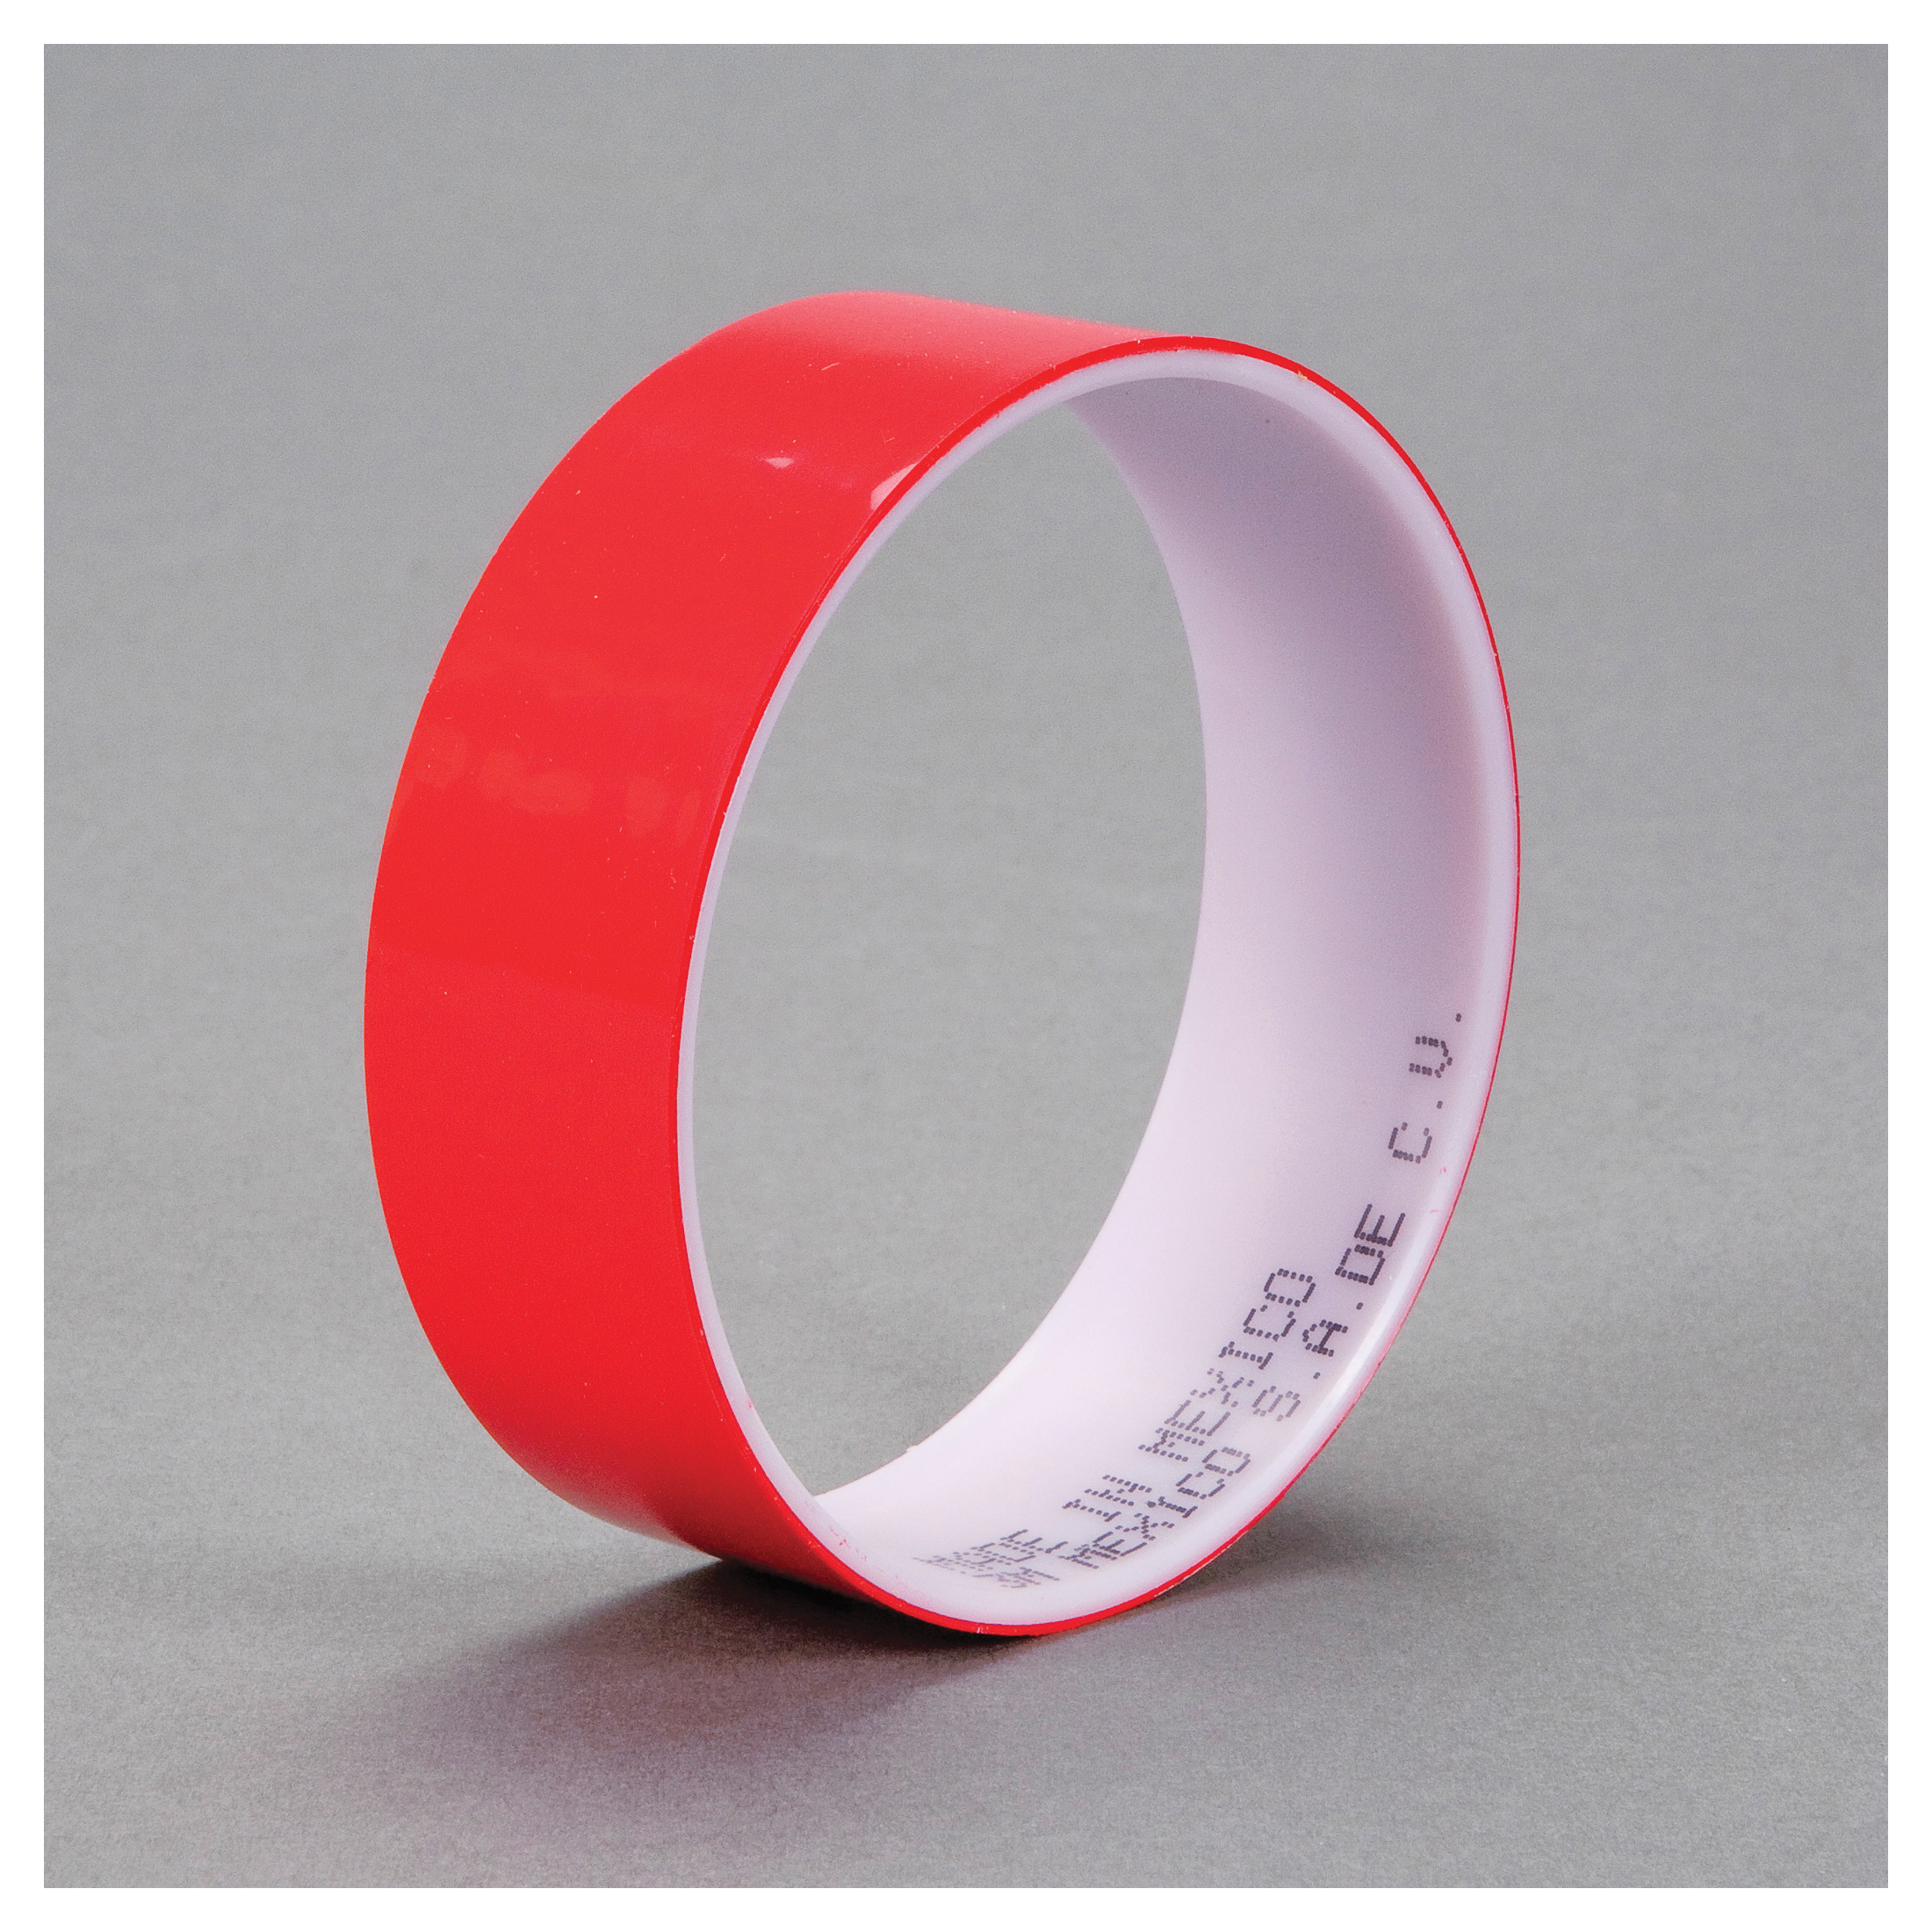 3M™ 021200-03573 Film Tape, 72 yd L x 1 in W, 1.9 mil THK, Acrylic Adhesive, 0.9 mil Polyester Backing, Red